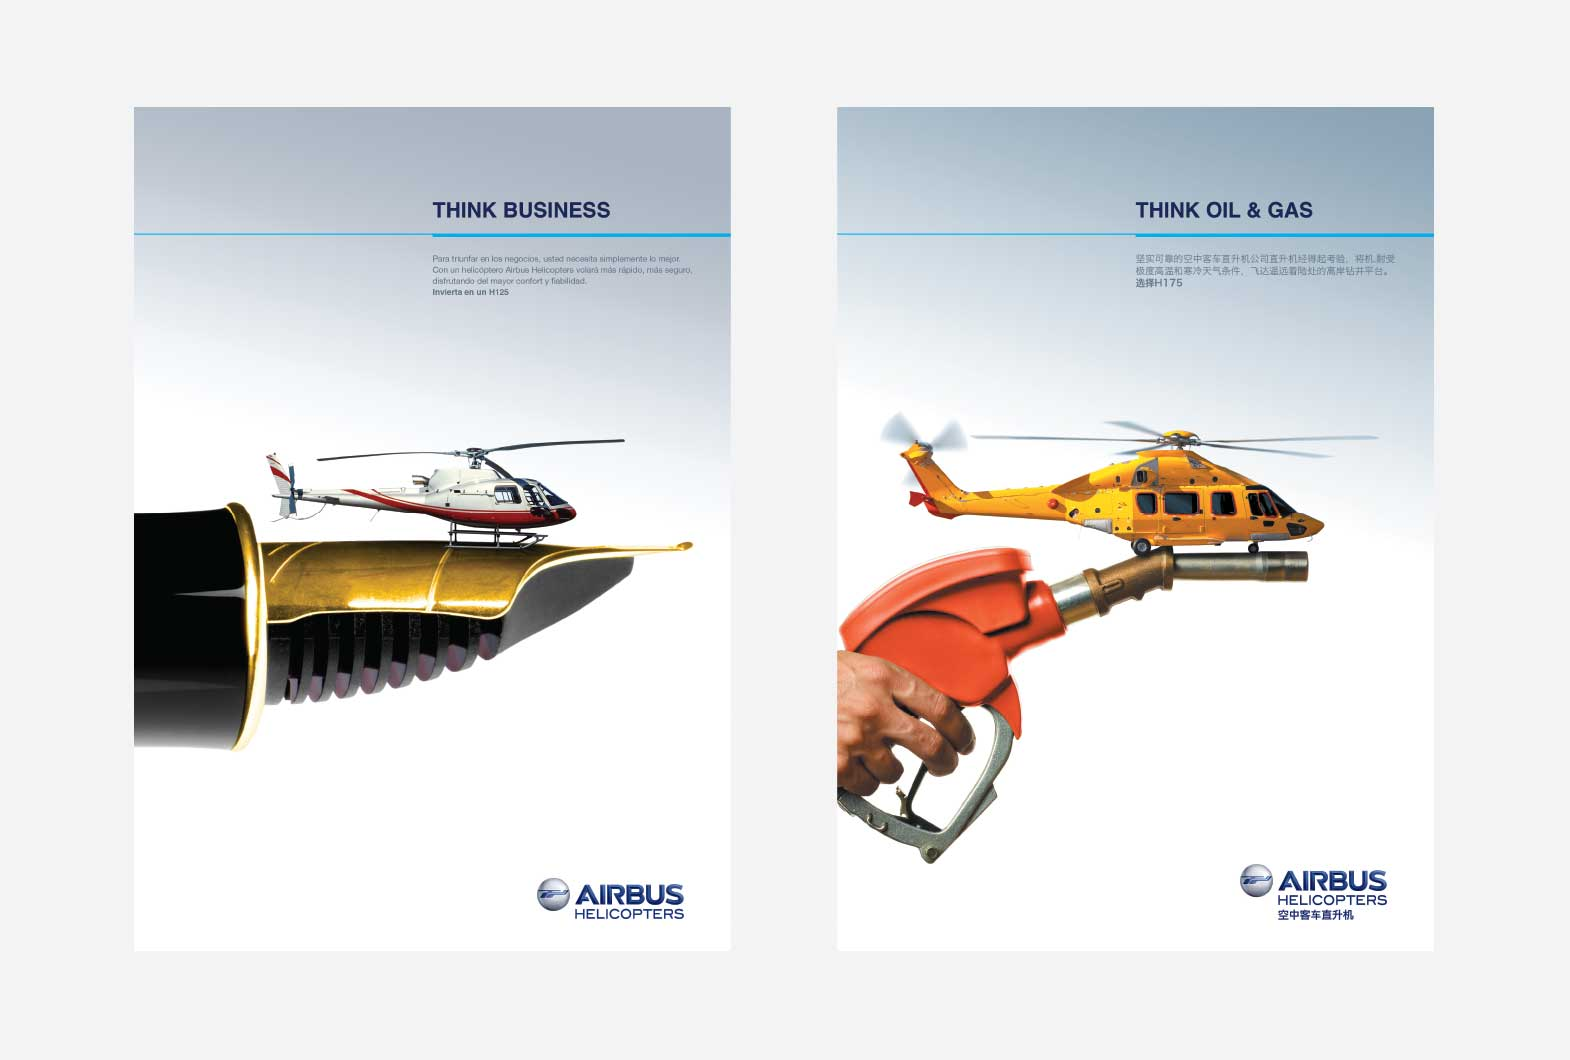 Airbus Helicopters advertising